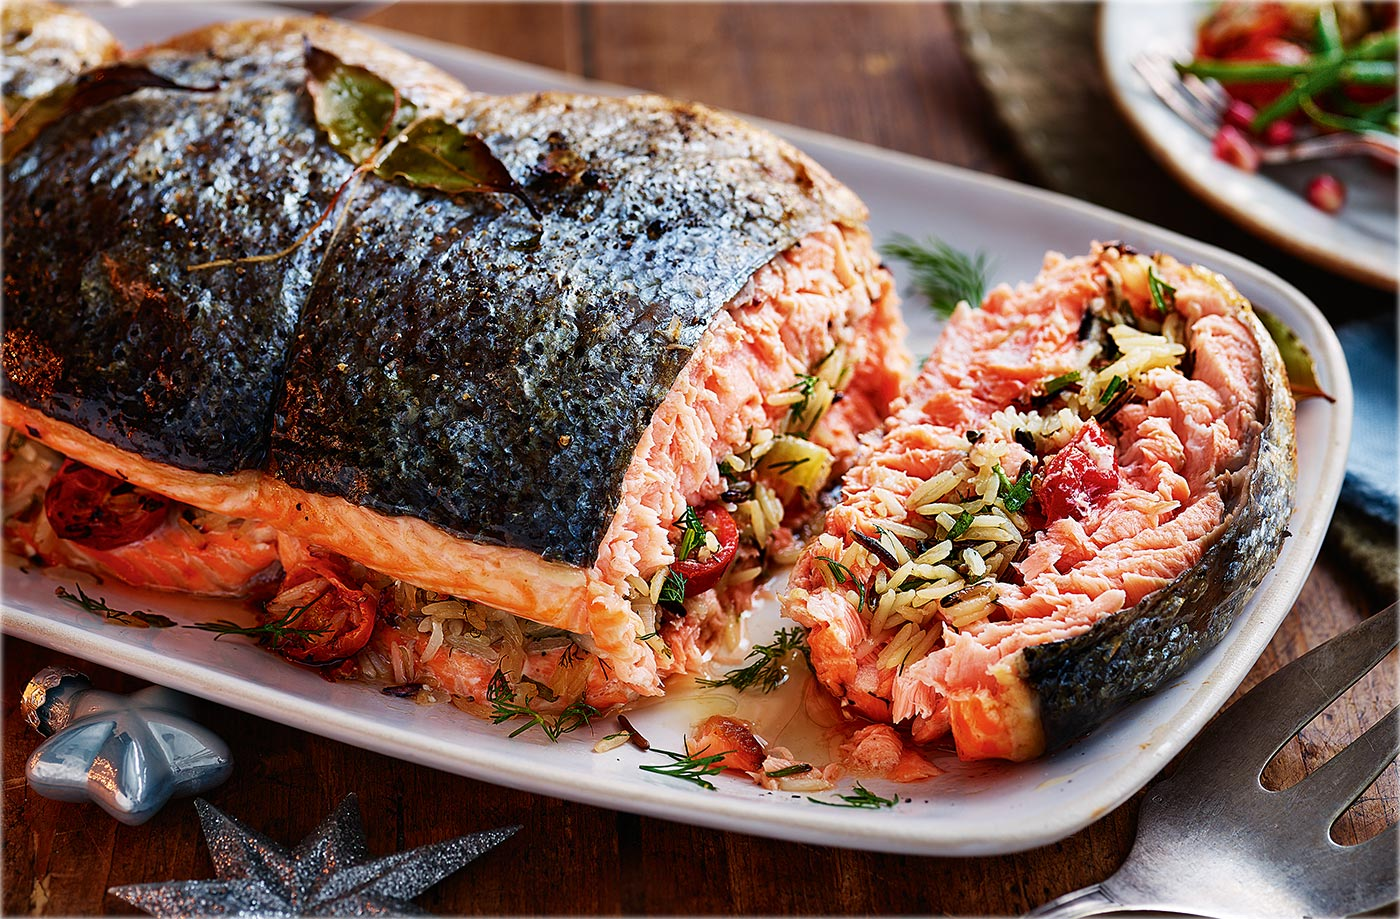 Rice Stuffed Salmon With Herby Buttermilk Sauce